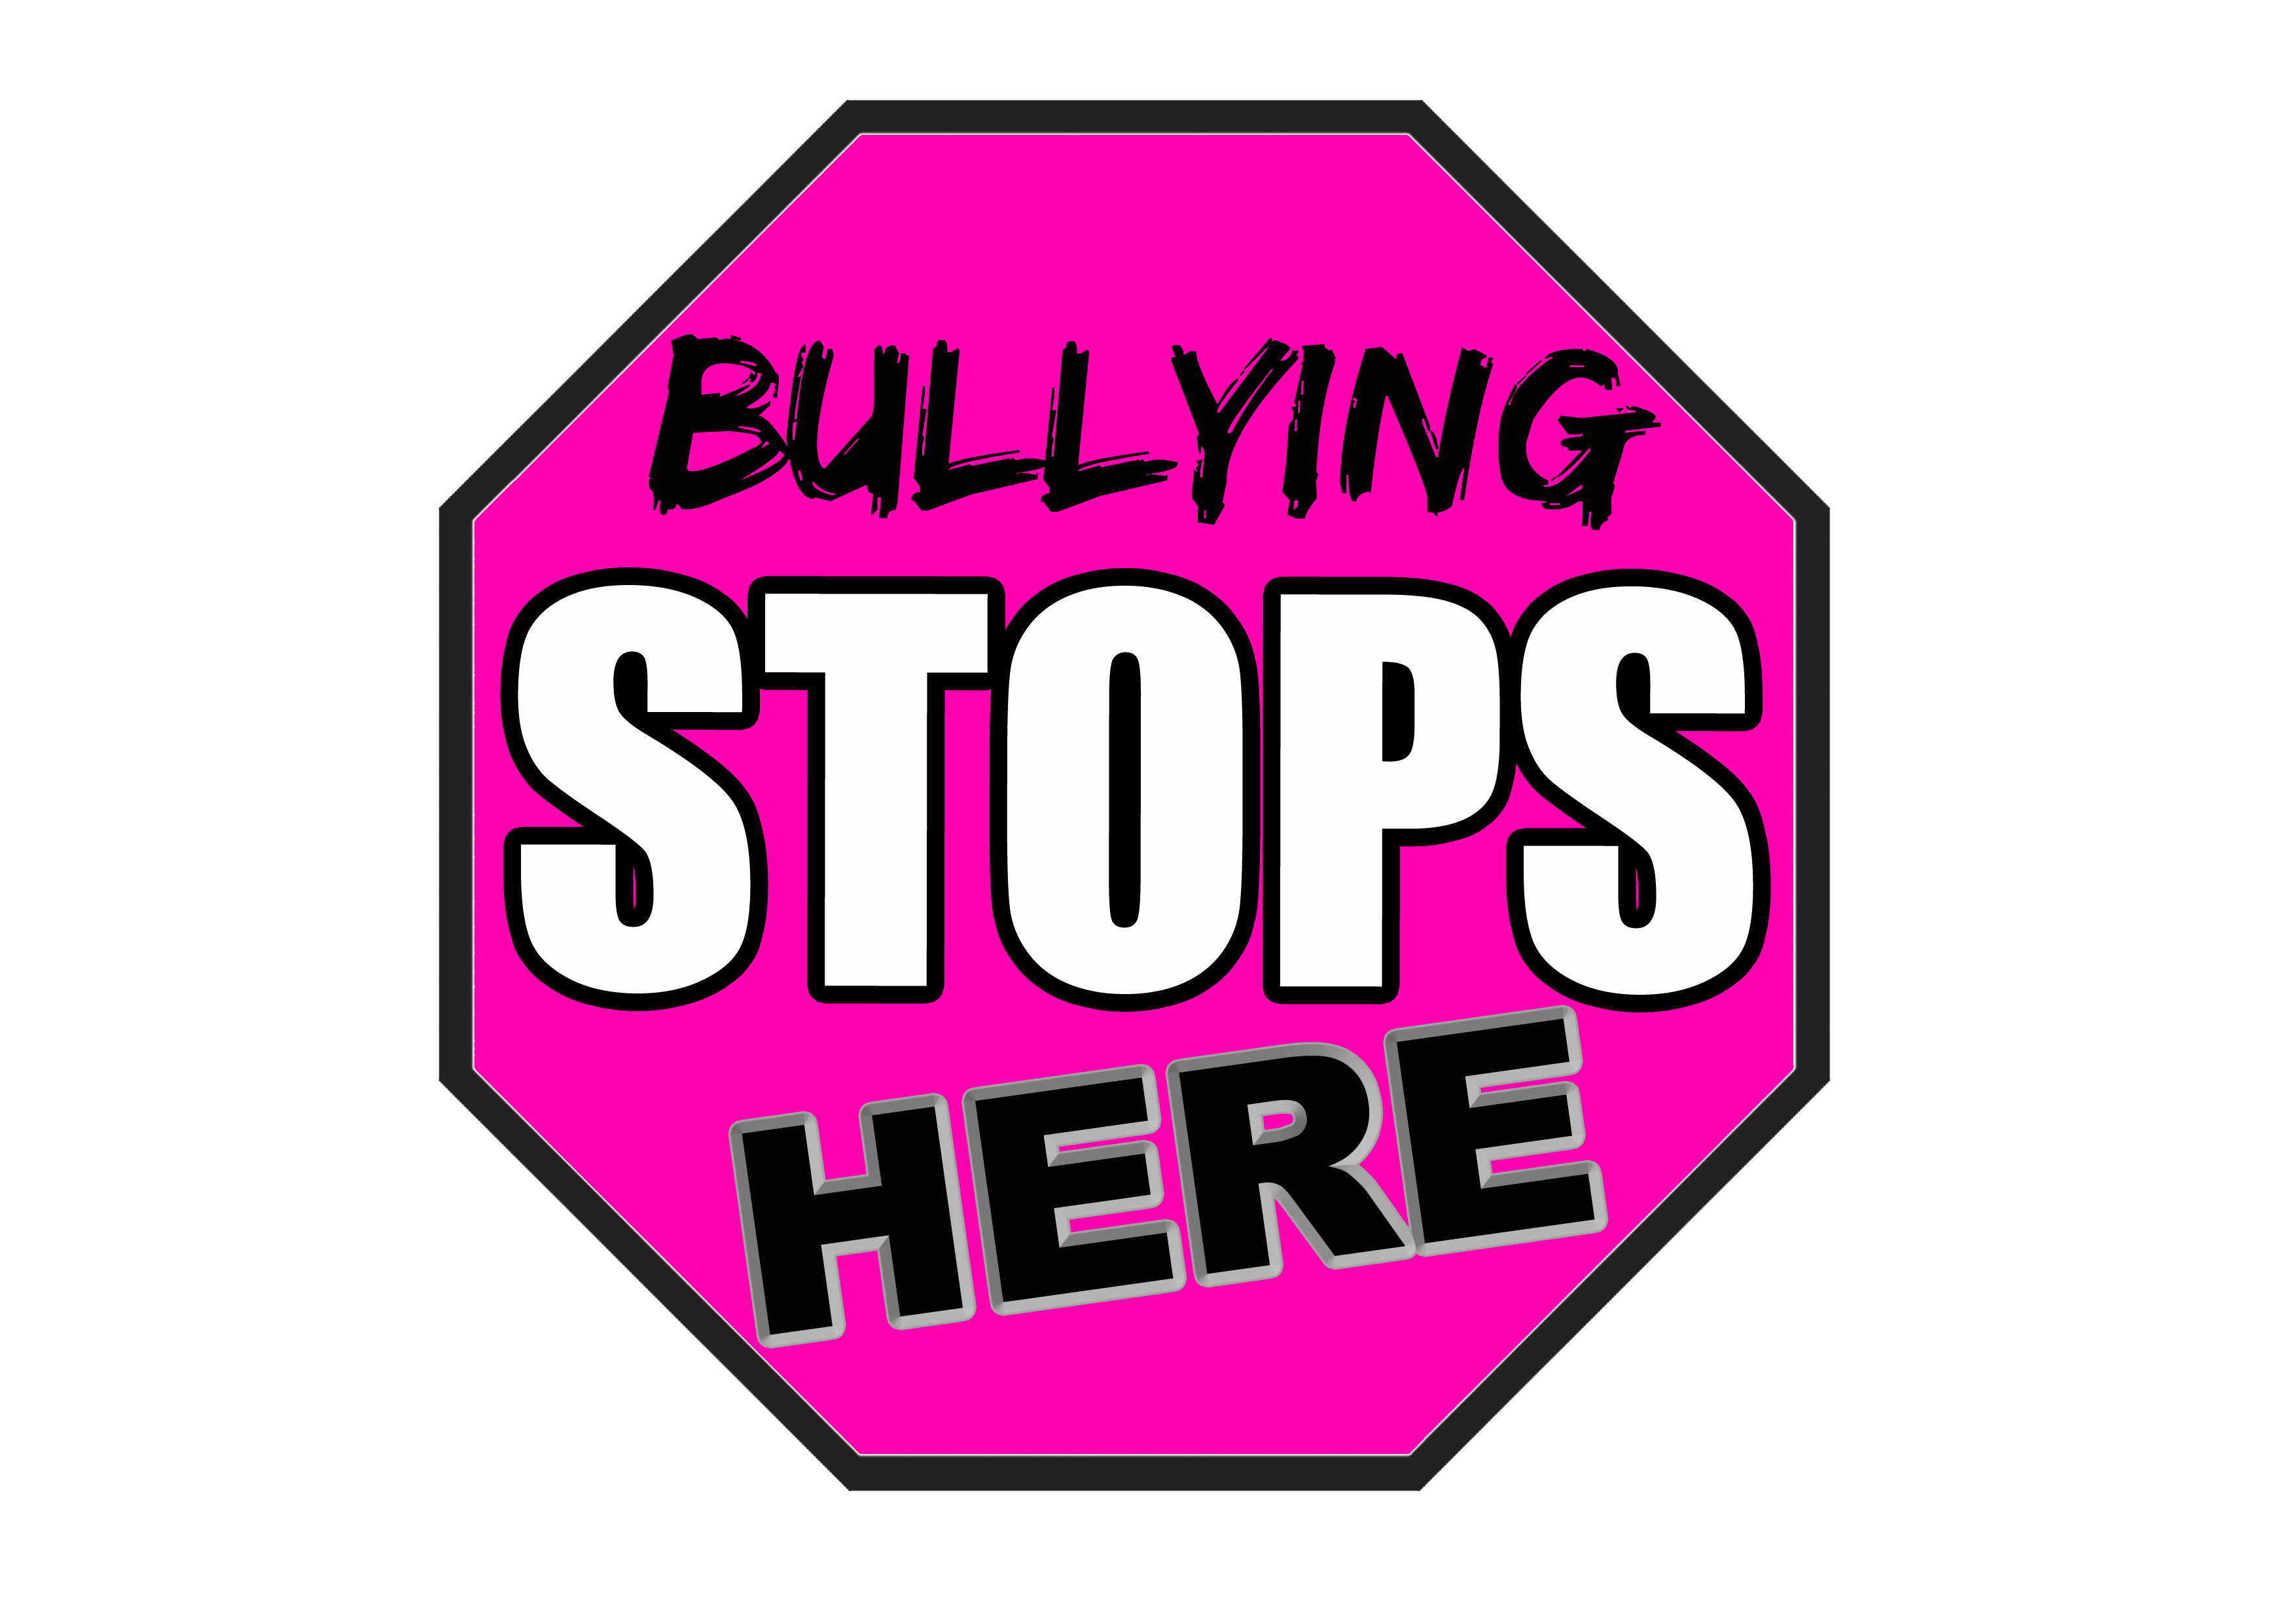 Student Action Plan Against Bullying